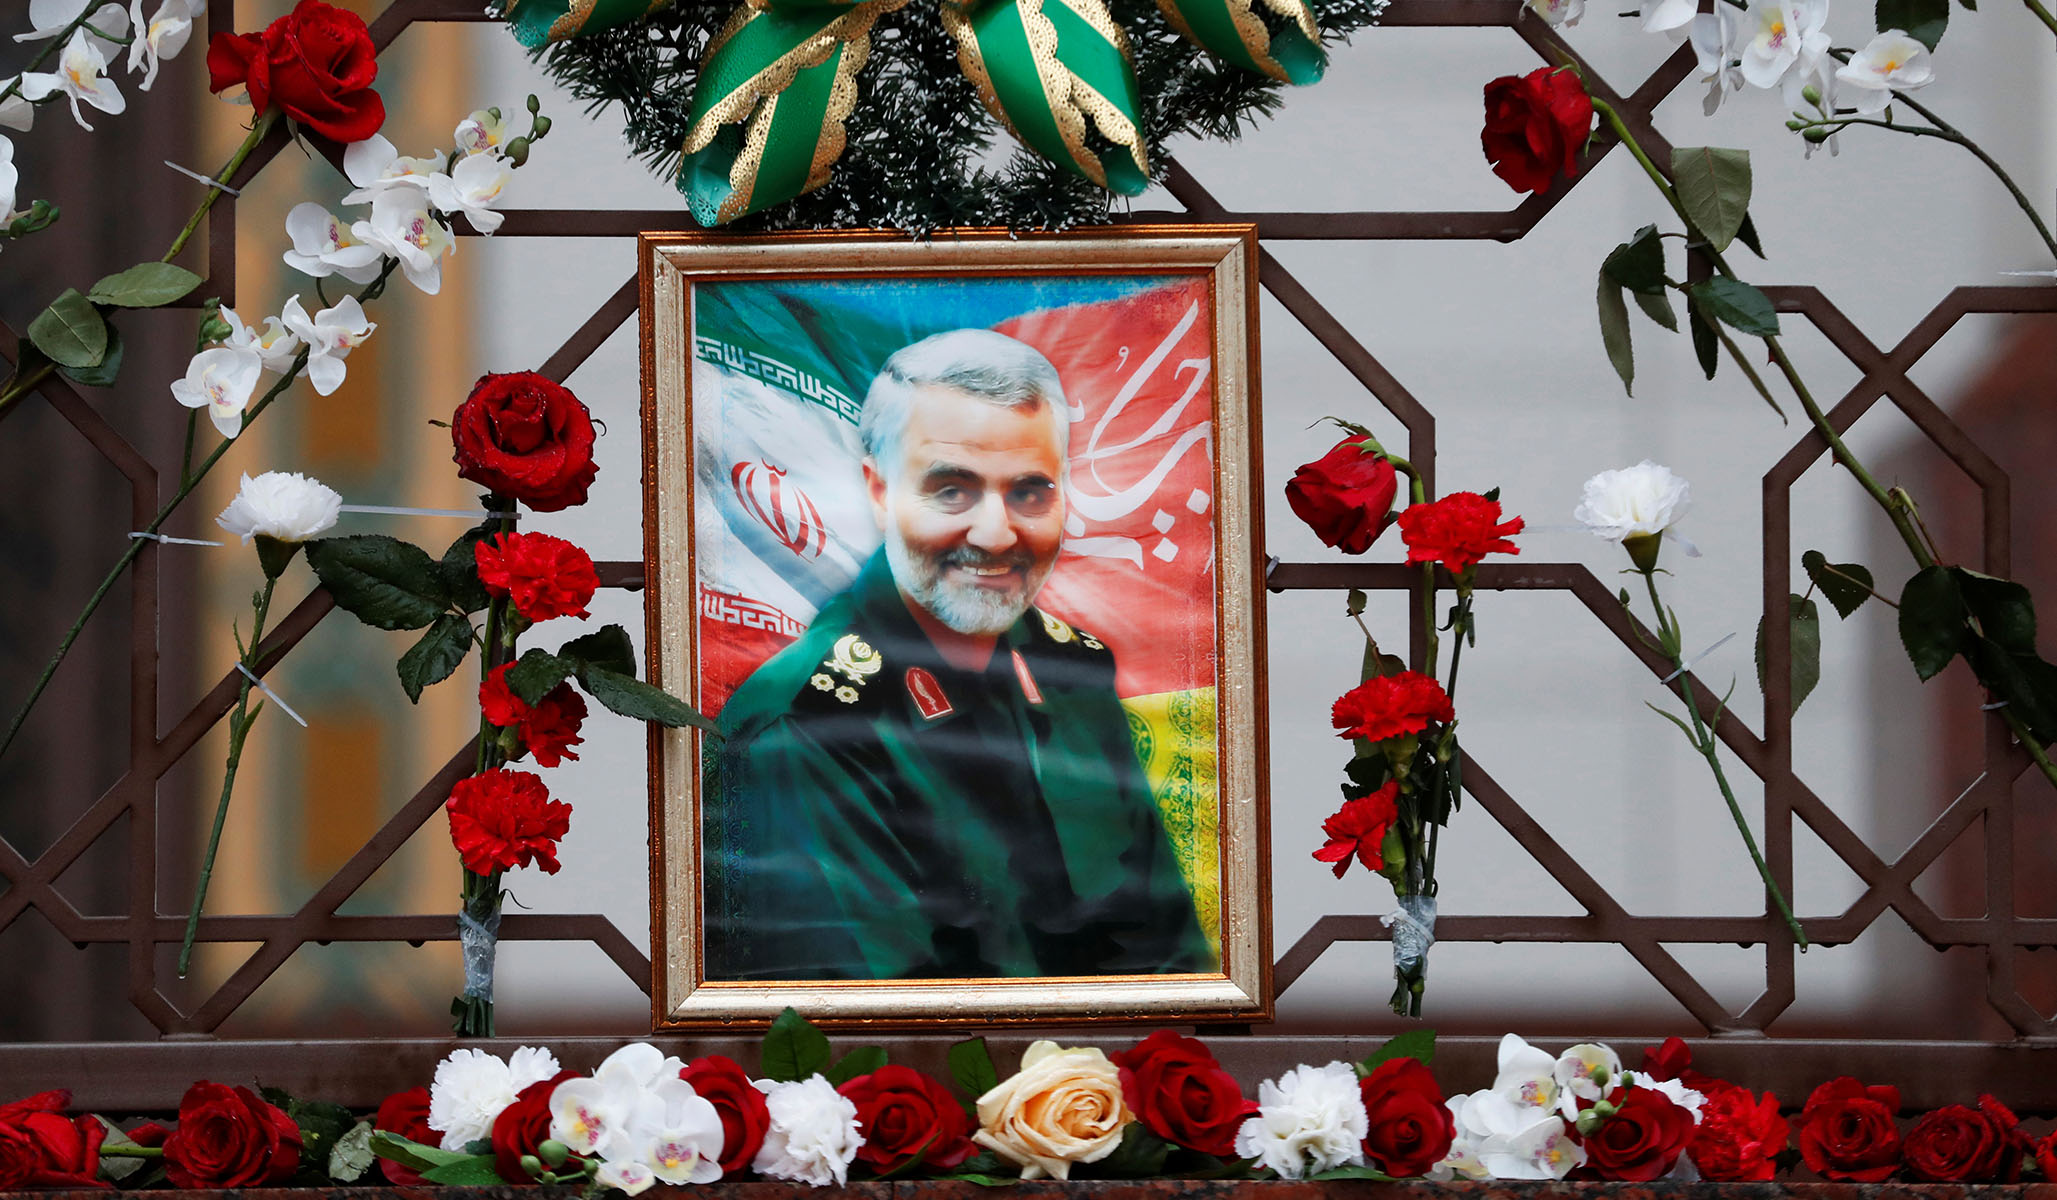 The Killing of Soleimani Was Not an 'Assassination'